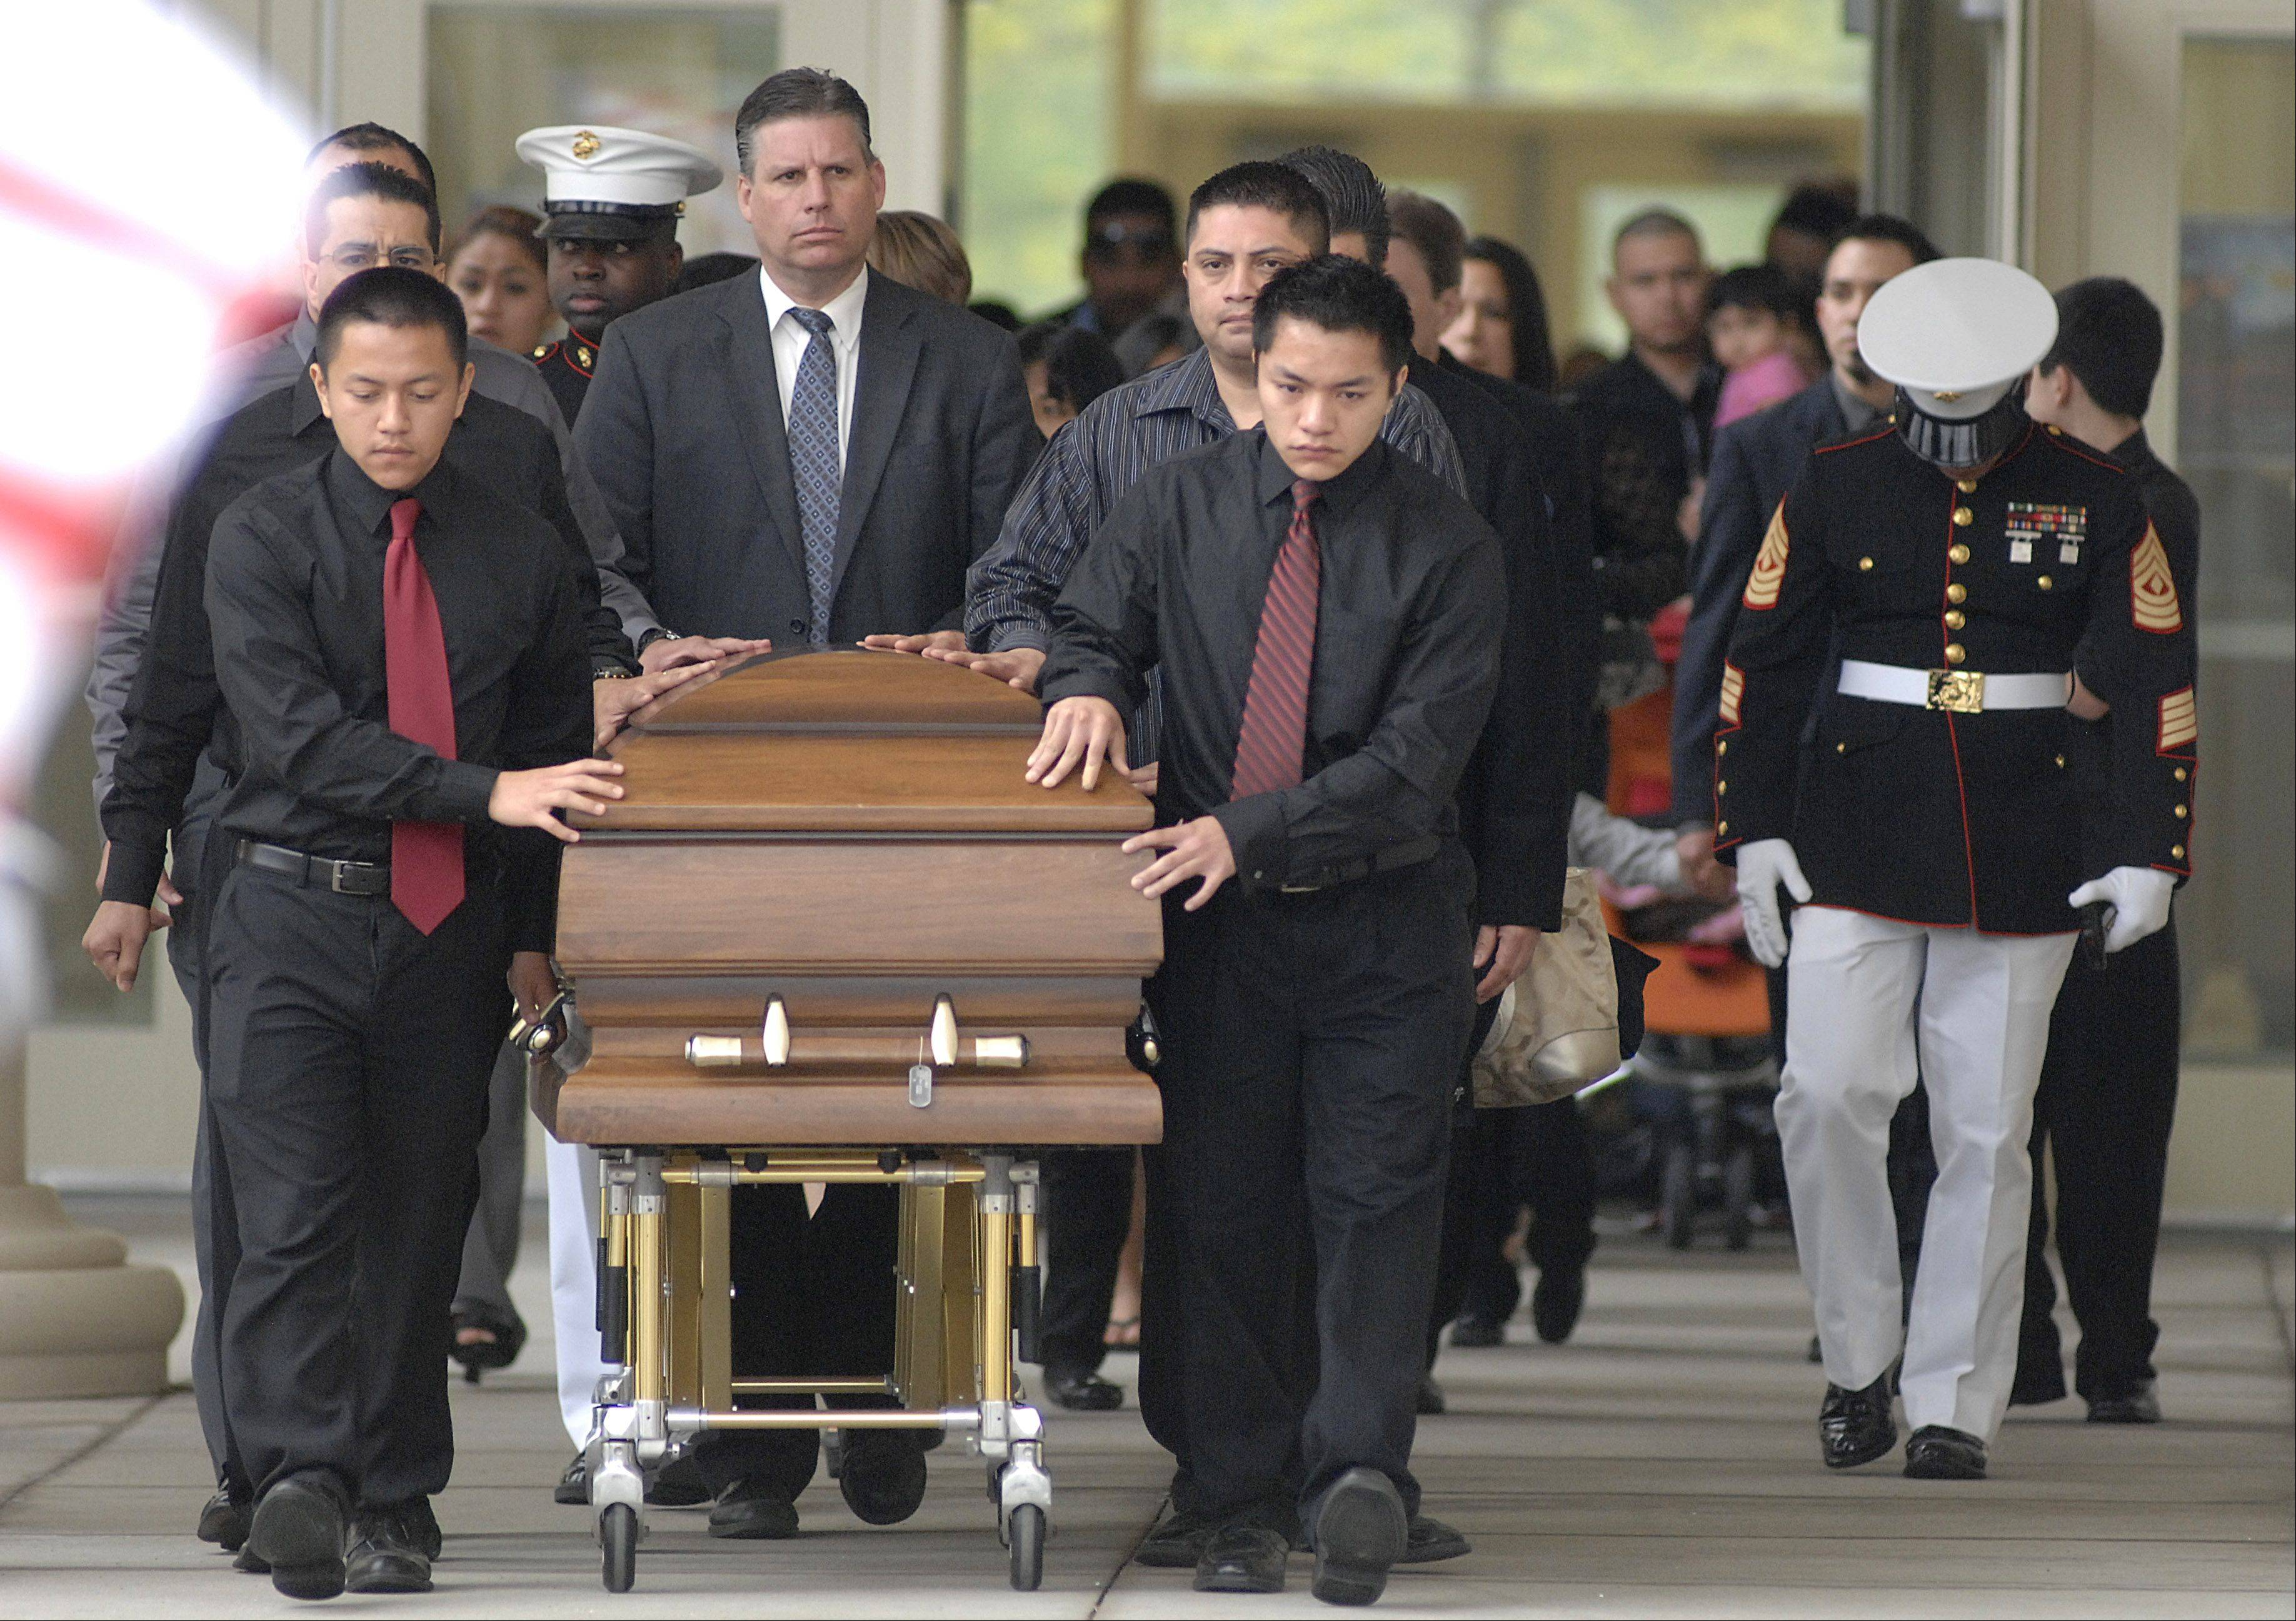 The casket of Cpl. Alex Martinez is escorted out of Life Changers International Church in Hoffman Estates after his funeral on Saturday. The Marine from Elgin was killed during combat operations in Afghanistan.